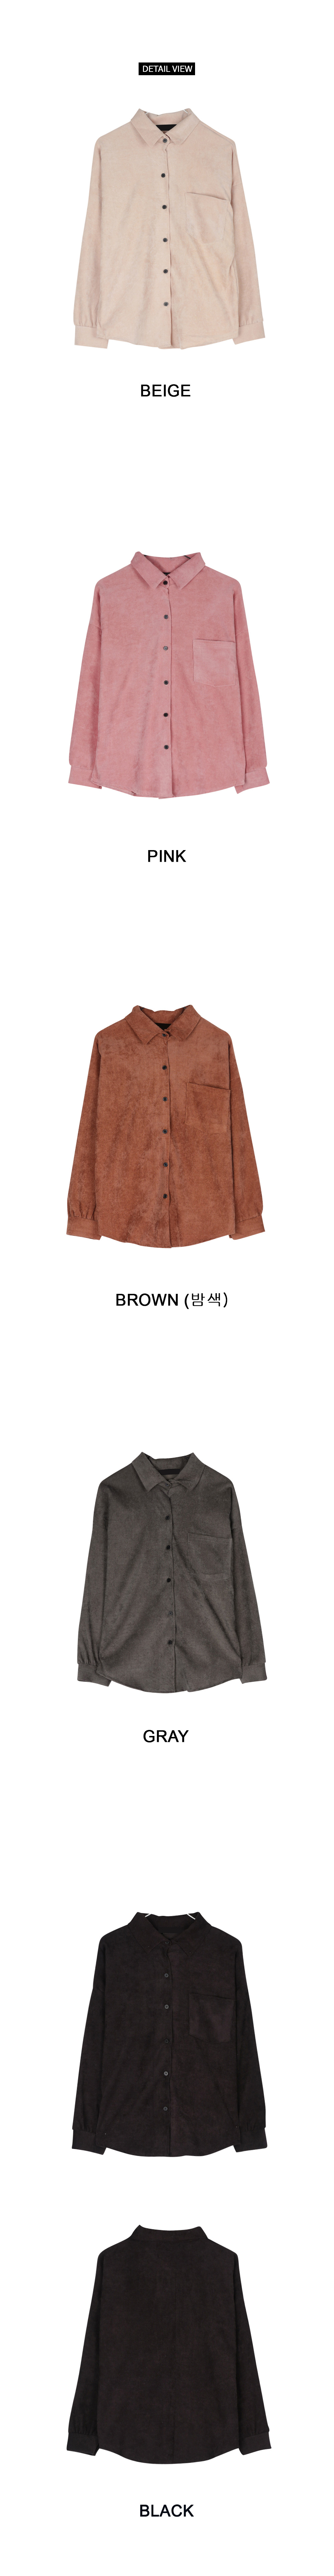 Soft fall corduroy shirt